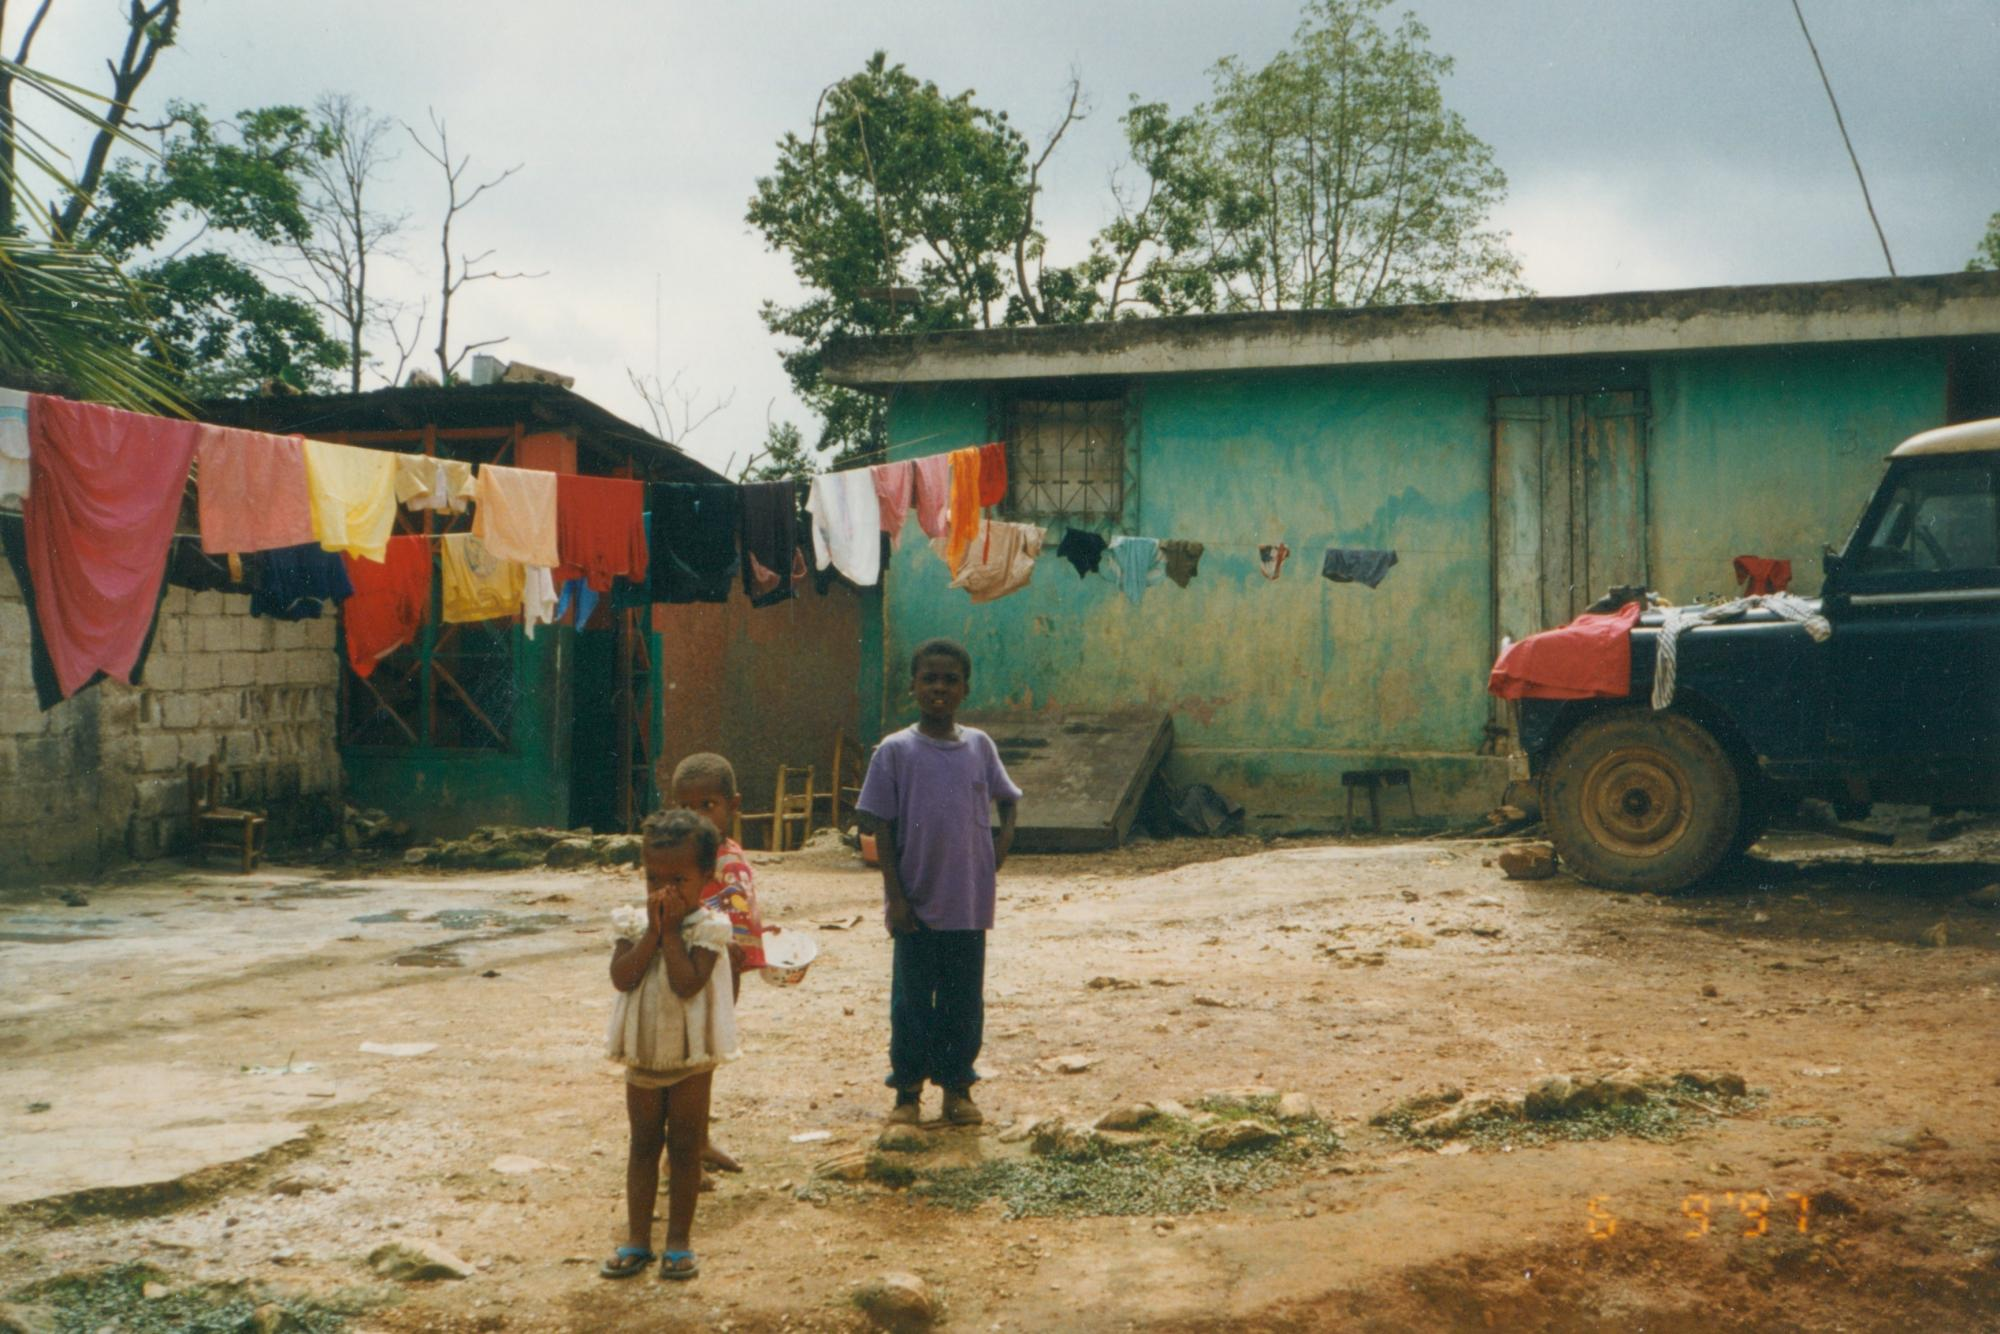 Young_children_near_home_yard_June_1997_image93.jpg